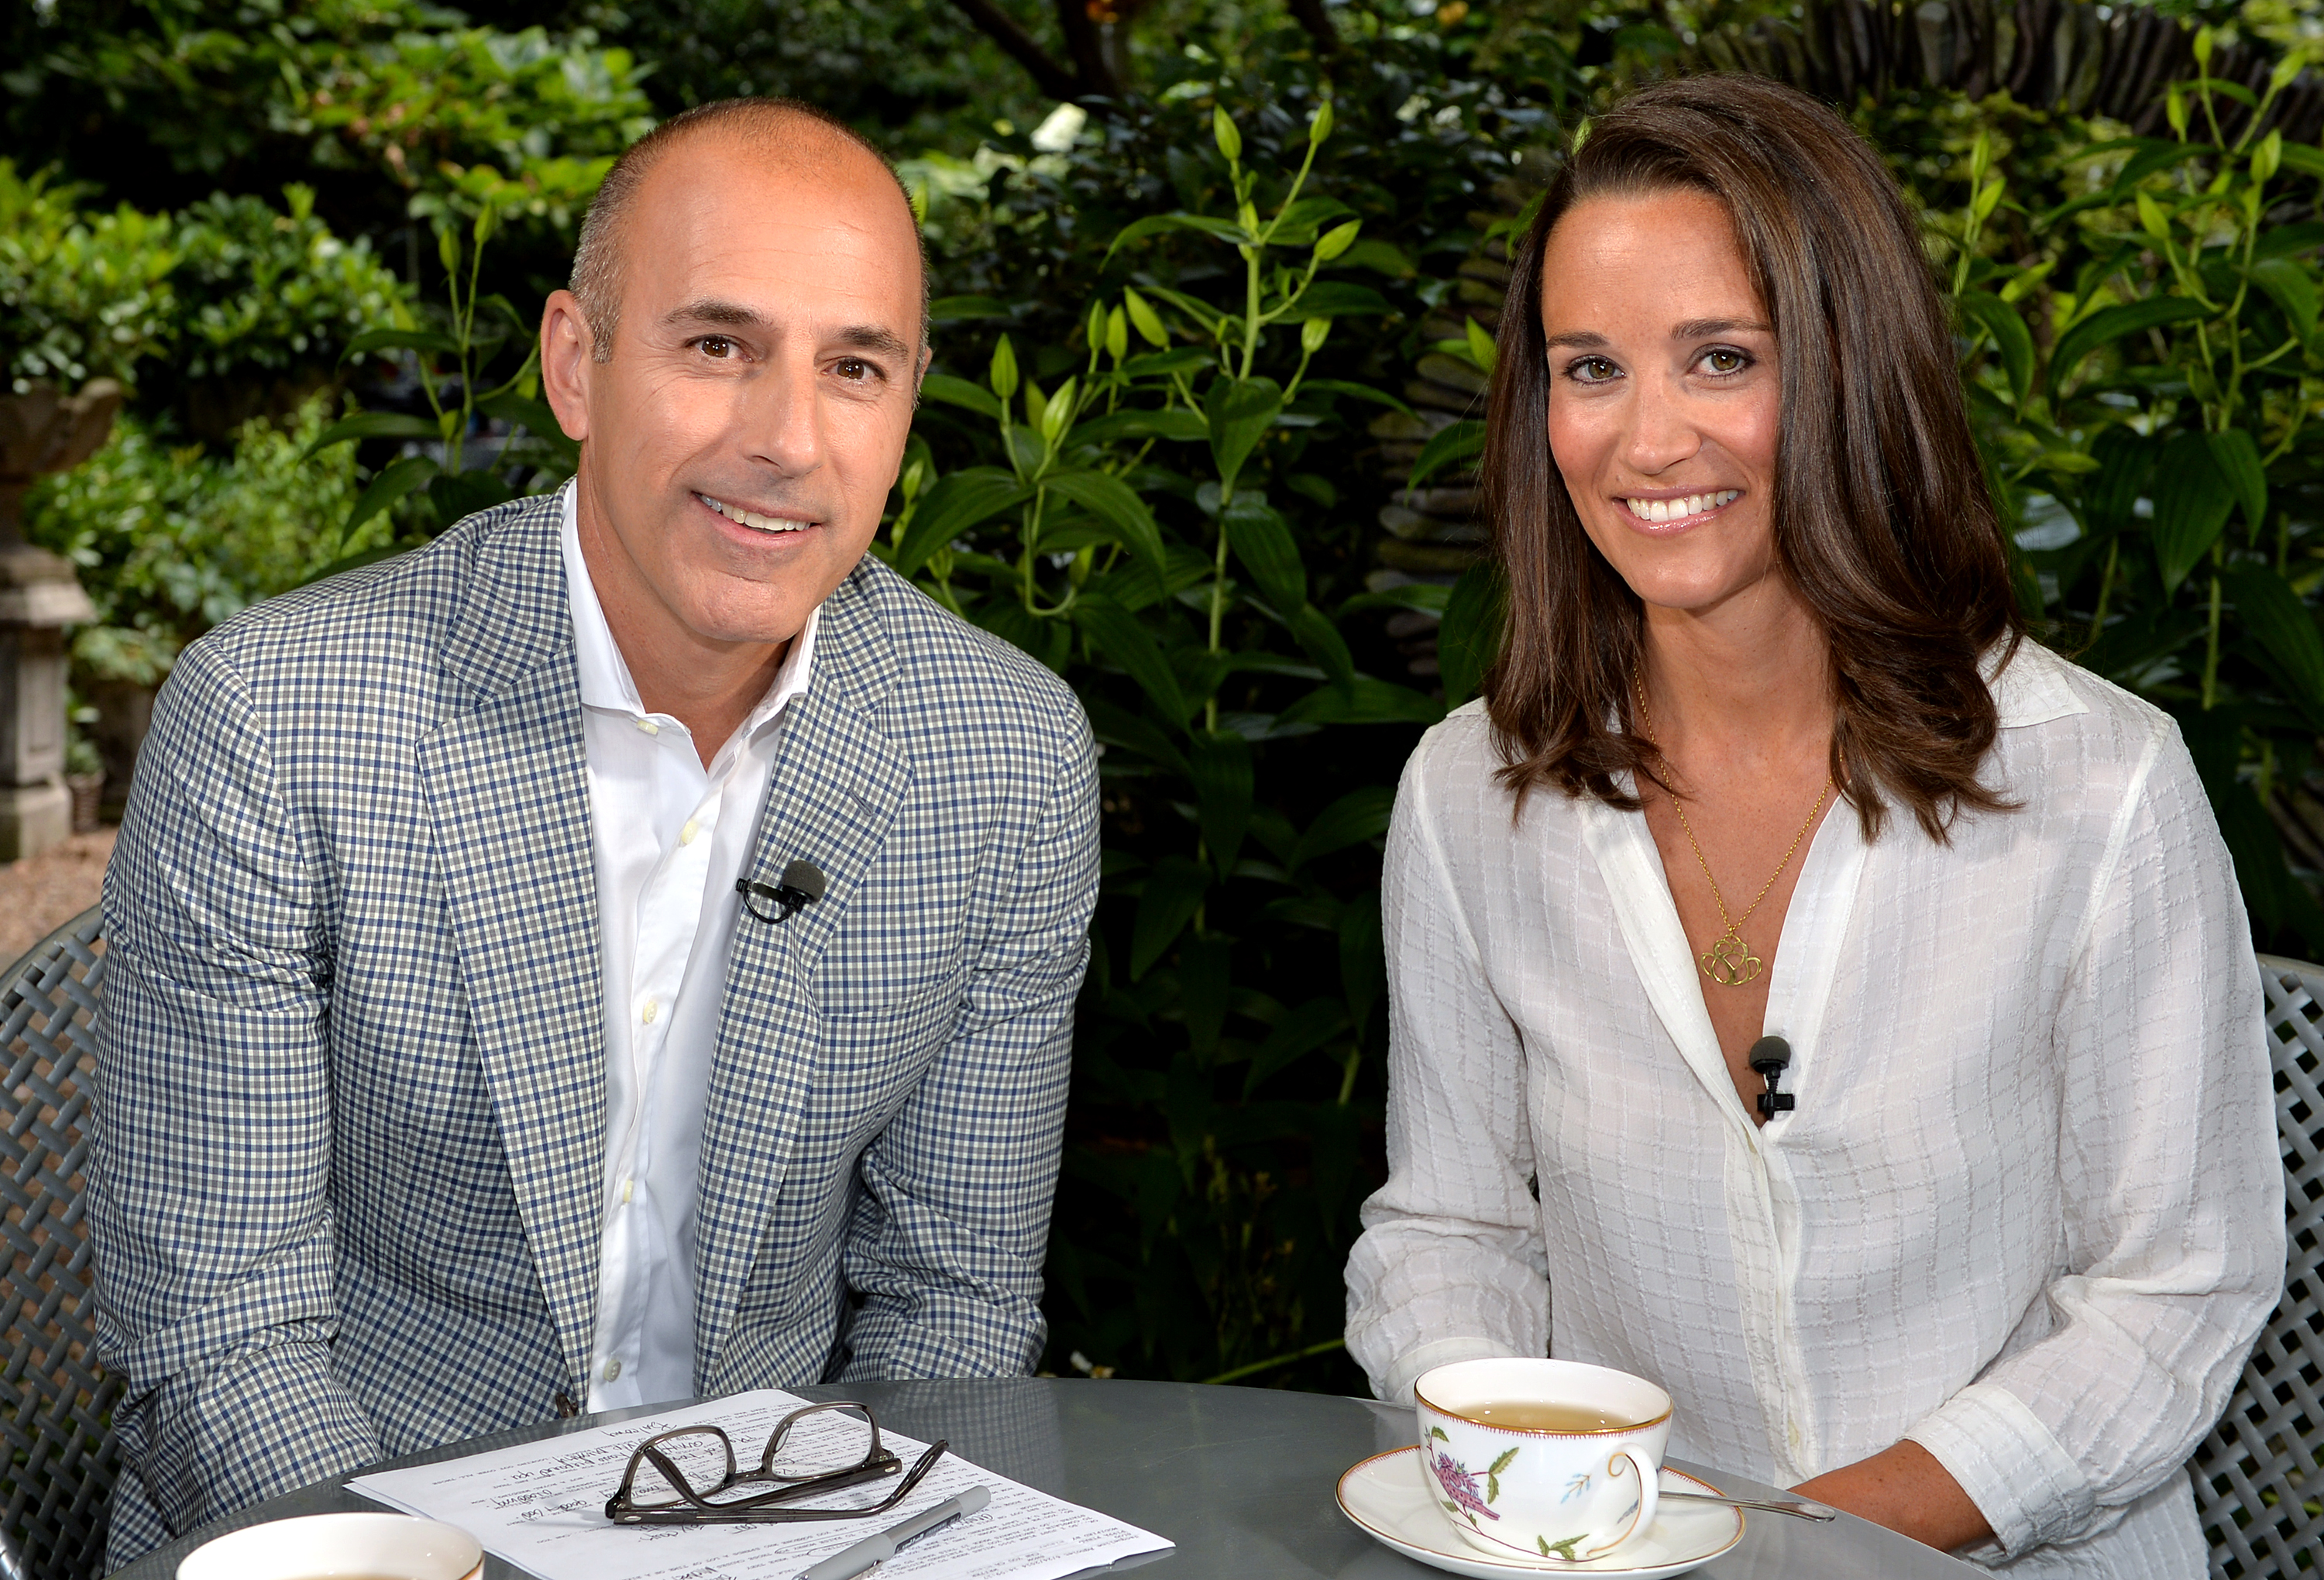 Pippa Middleton sits down with Matt Lauer in her first-ever television interview (Anthony Harvey --NBC/NBC NewsWire via Getty Images)